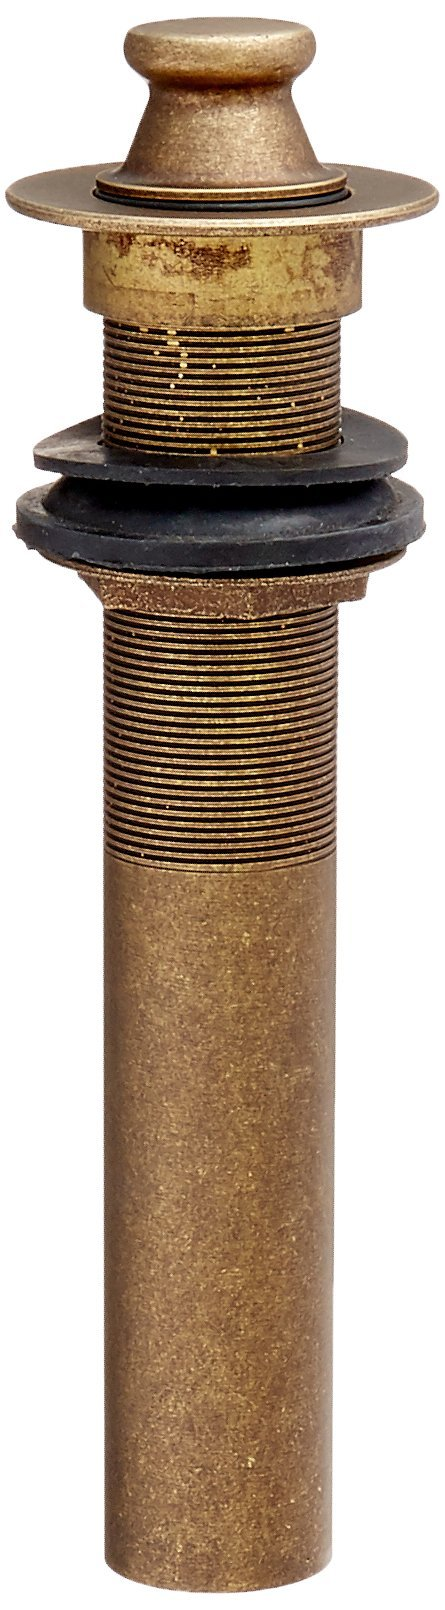 Belle Foret BFNLD4TB Lift-and-Turn Lavatory Drain without Overflow Holes, Tumbled Bronze by Belle Foret